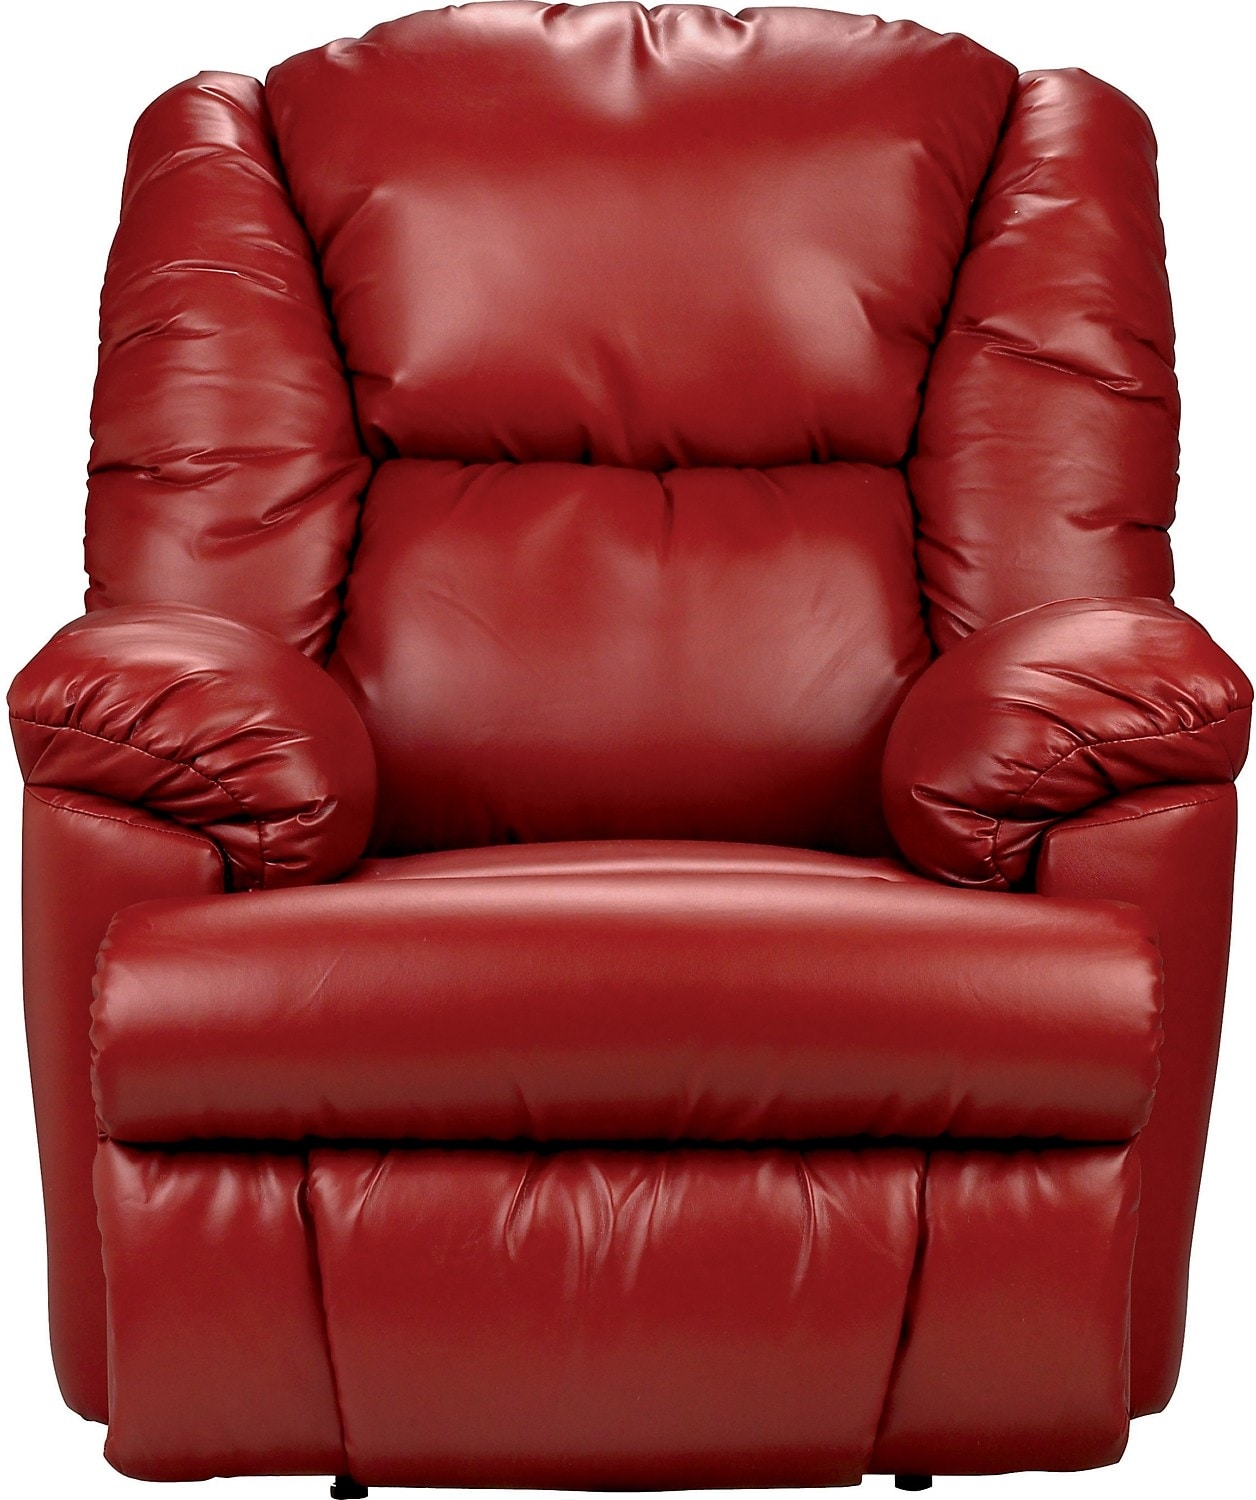 Leather Living Room Set Clearance: Bmaxx Bonded Leather Power Reclining Chair – Red